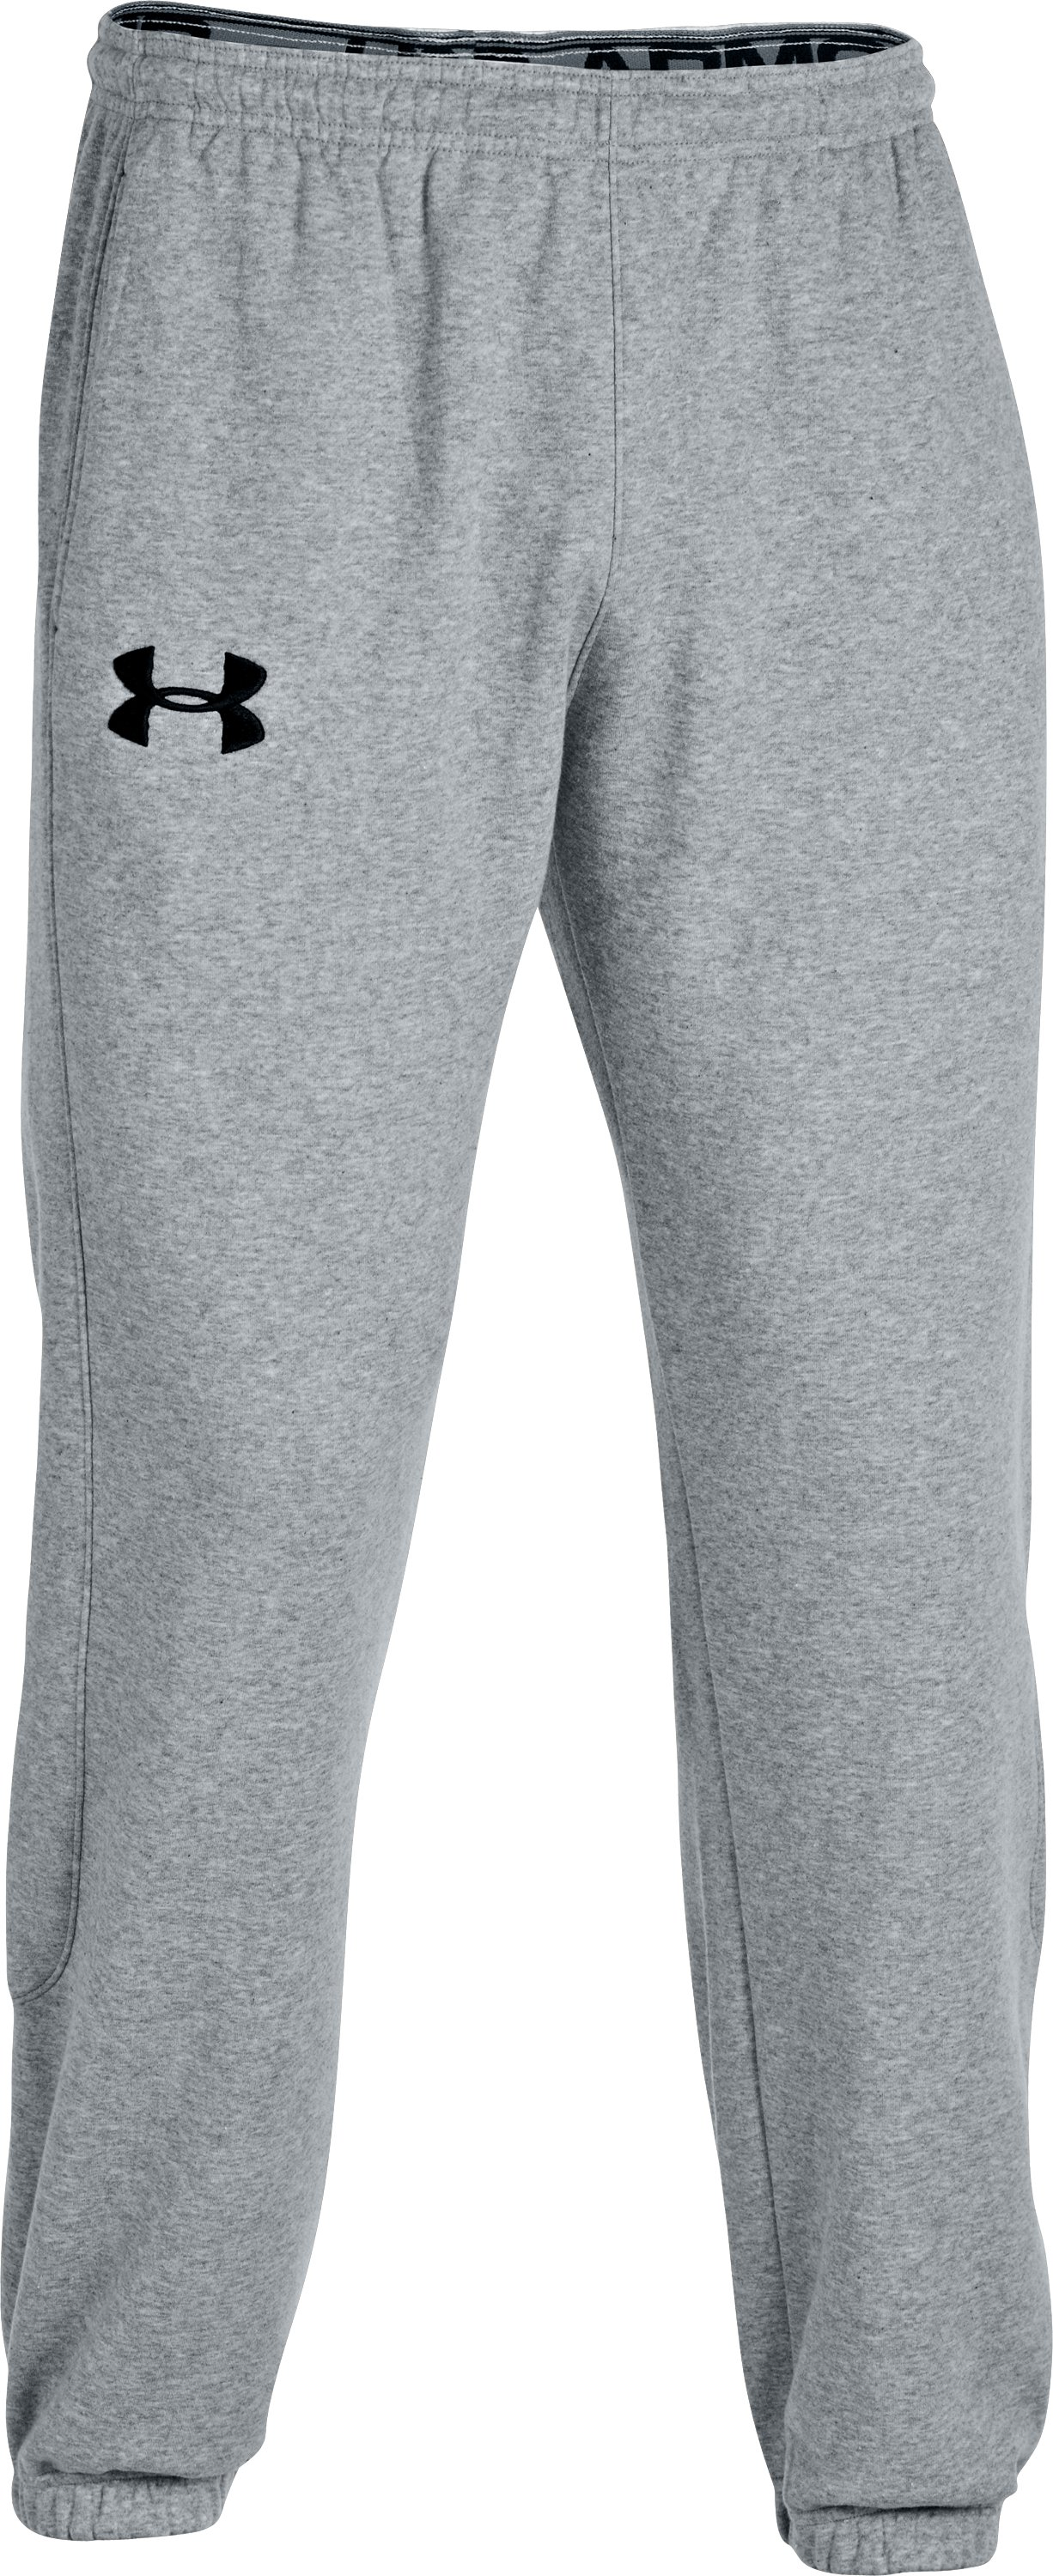 Men's Charged Cotton® Storm Cuffed Pants, True Gray Heather